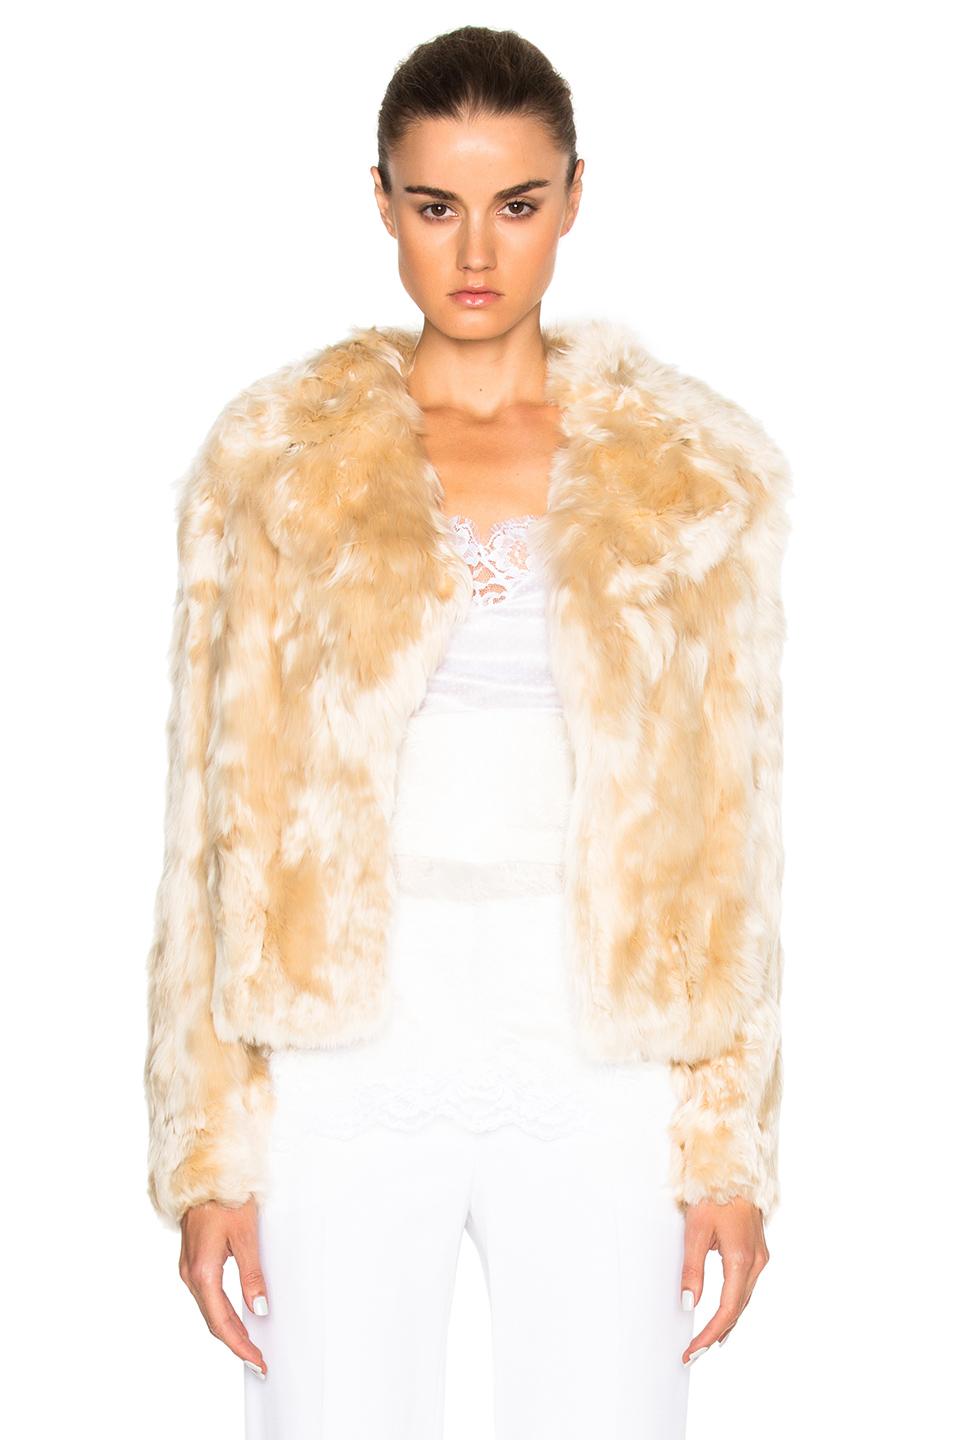 Givenchy Alpaca Fur Jacket in Neutrals